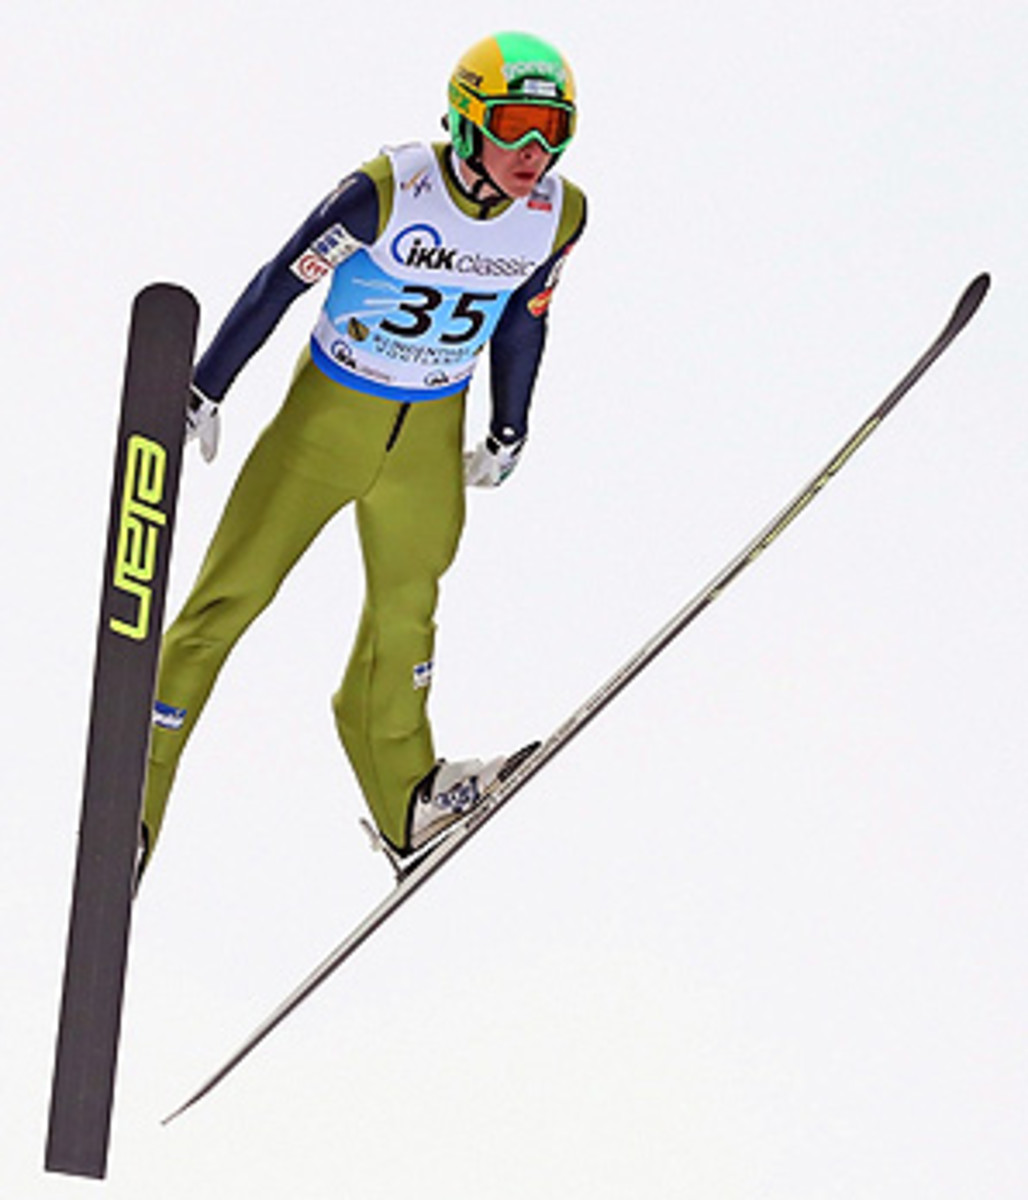 Slovenian teenager Jaka Hvala jumped 142.5 meters and 133 meters for the win.